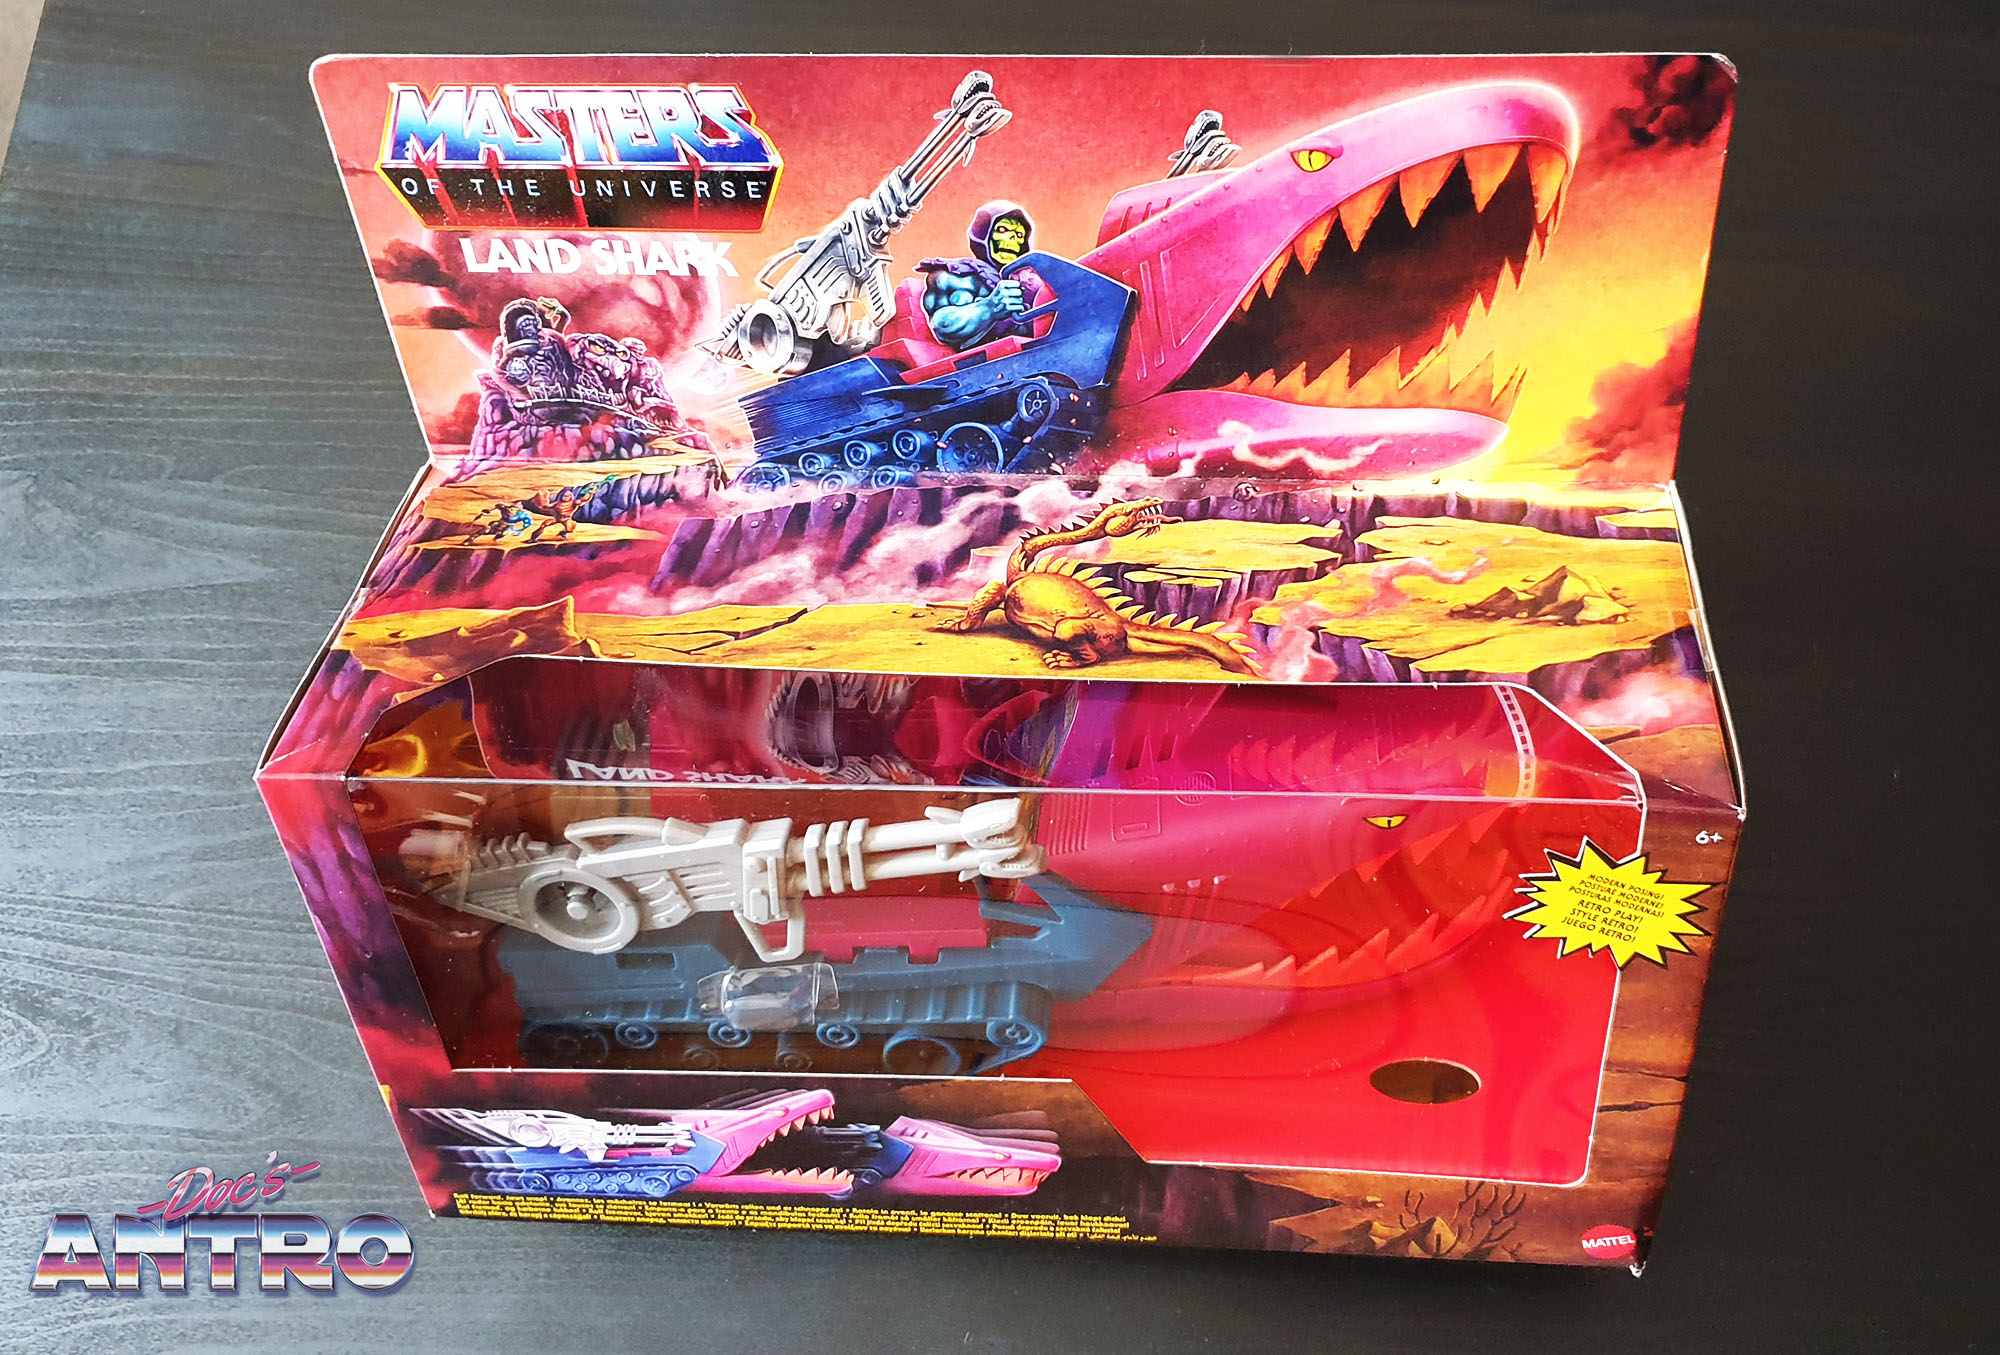 Masters of the Universe Origins Land Shark recensione review Antro